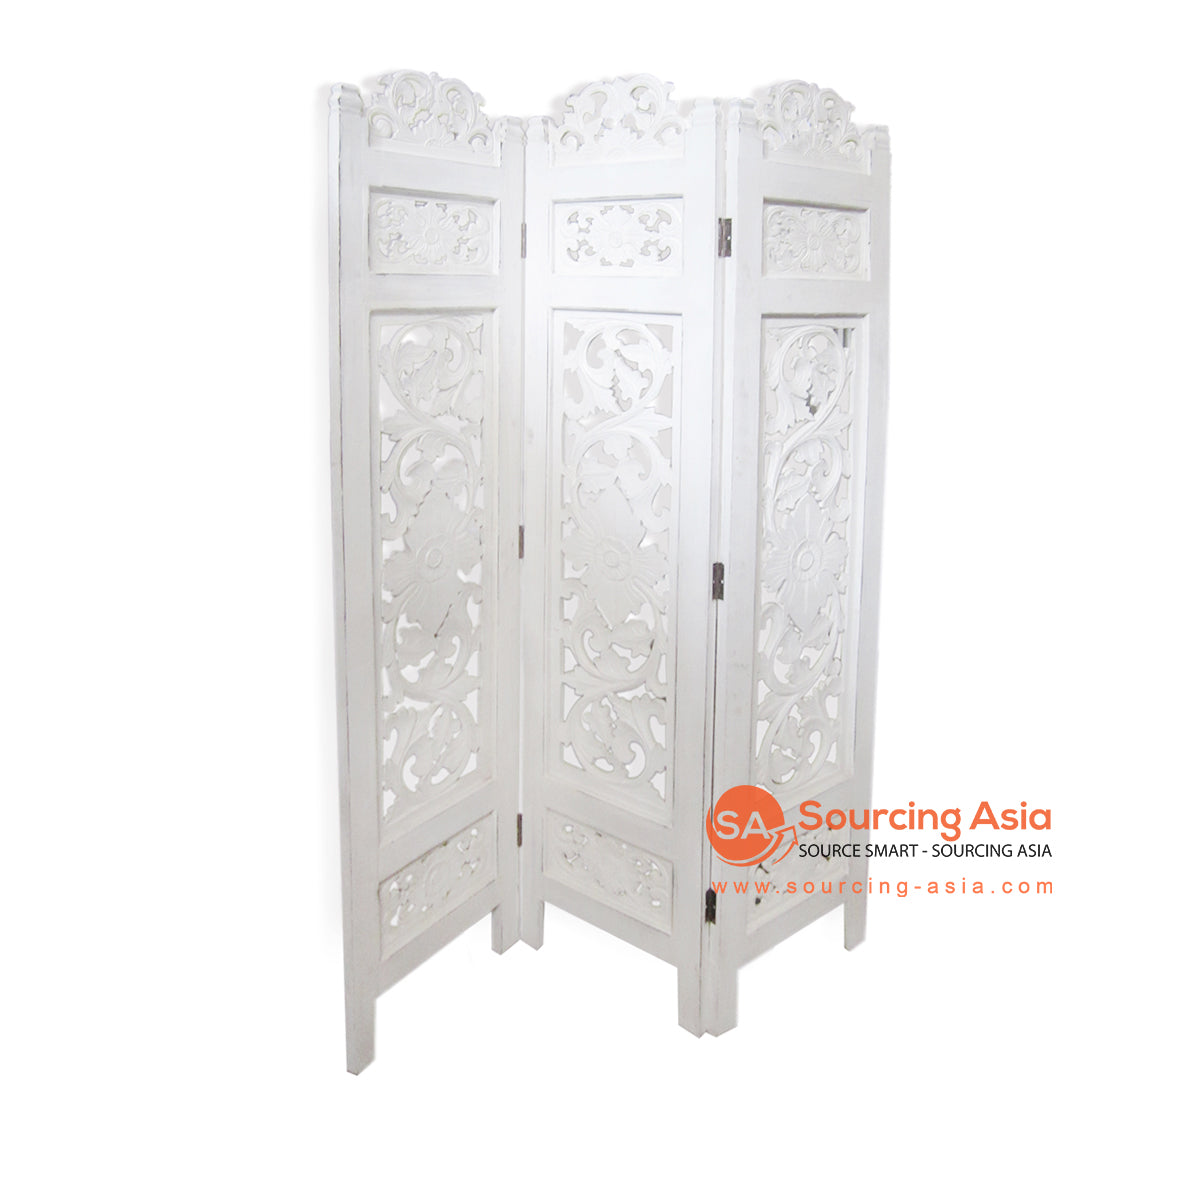 THE131WW SCREEN CARVING WHITE WASH